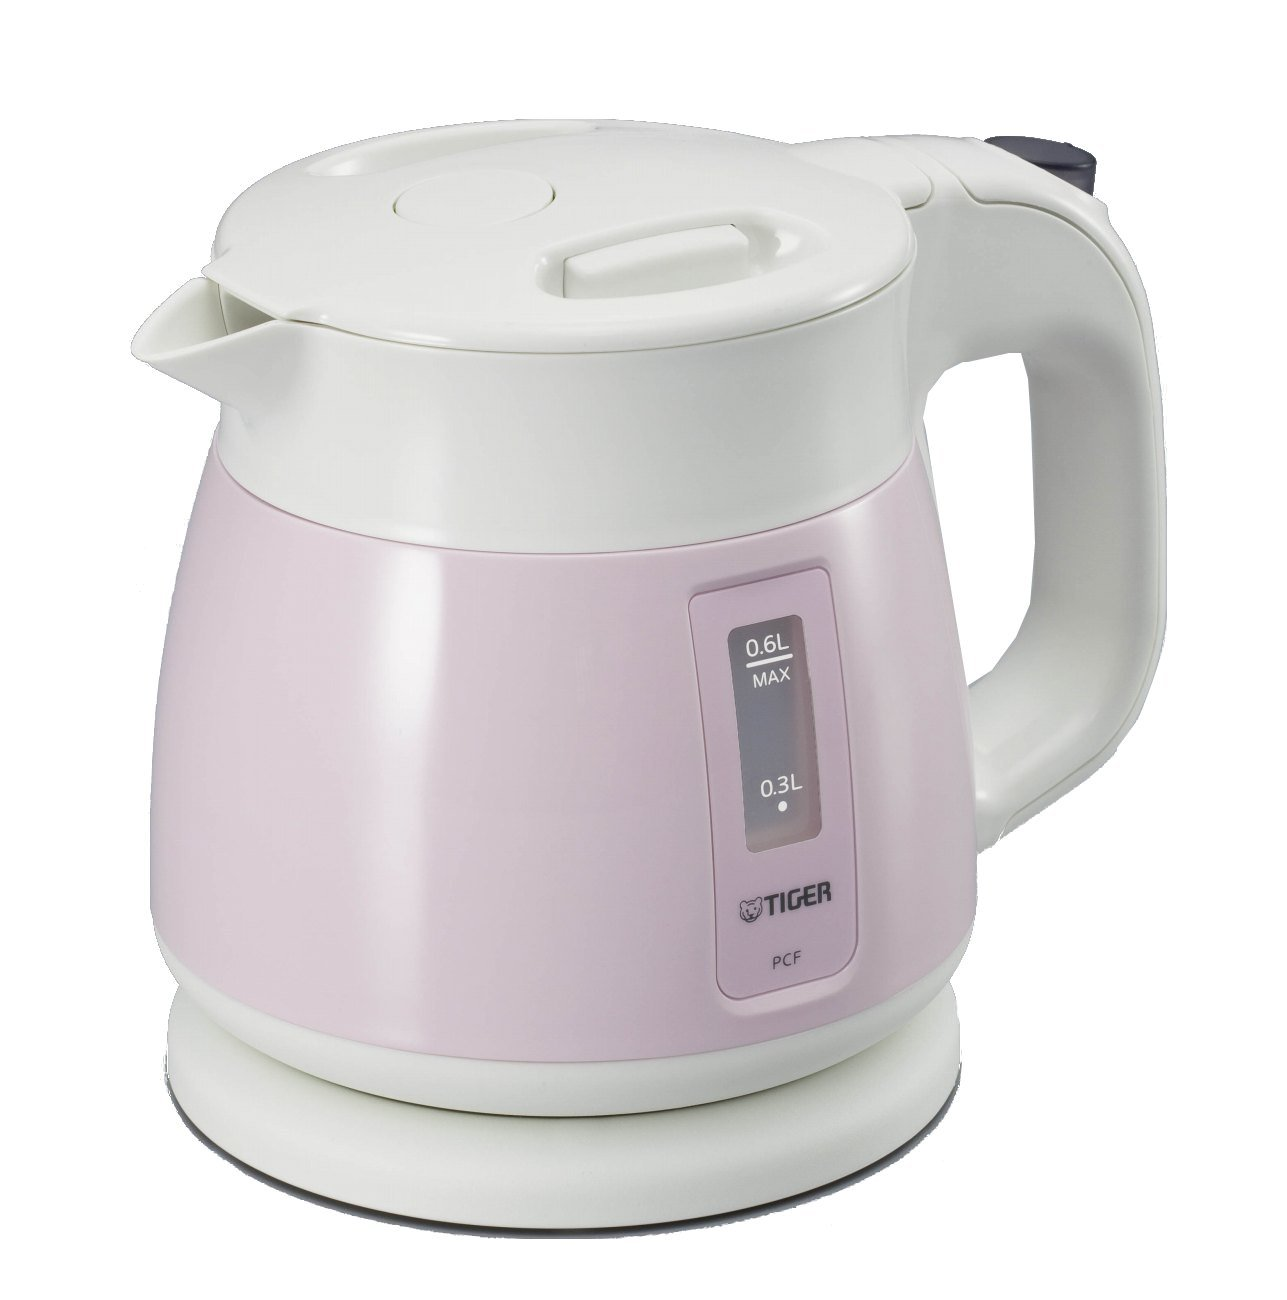 TIGER electric kettle frame child 0.6L Pink PCF-A060-PF